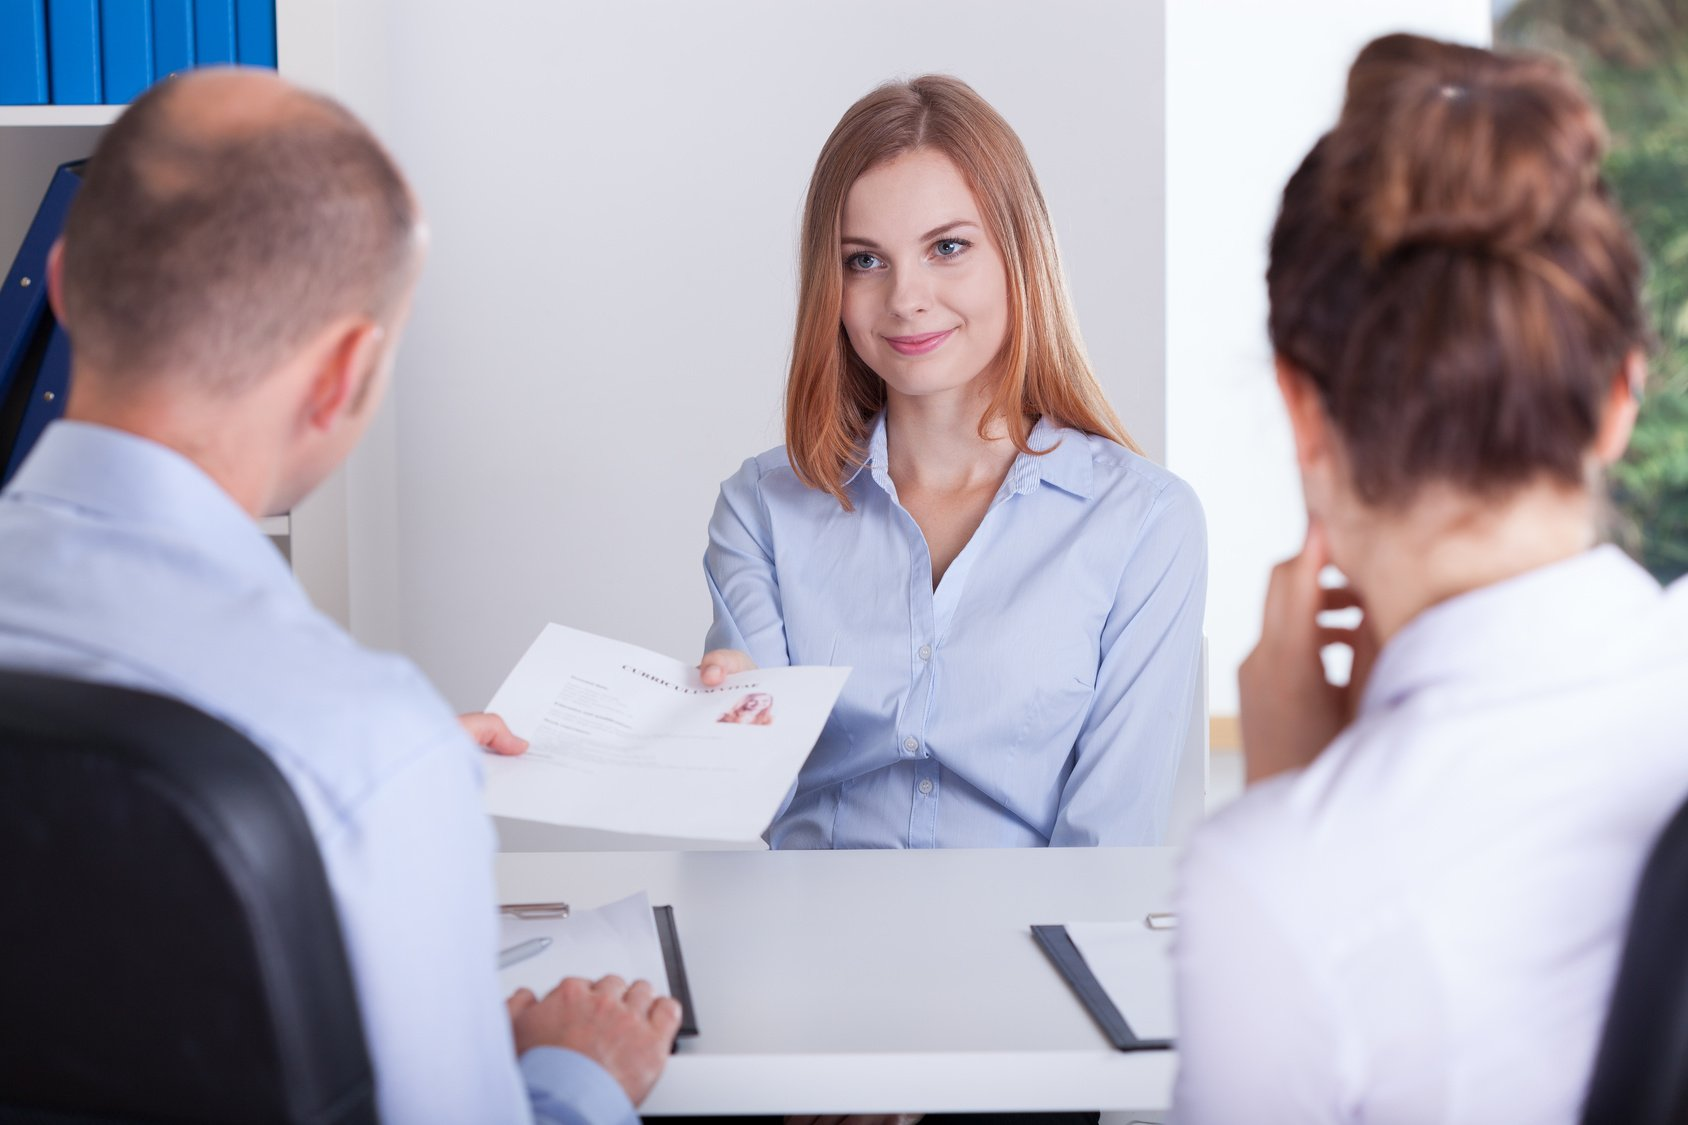 make sure you maintain good eye contact, as this is great interview etiquette